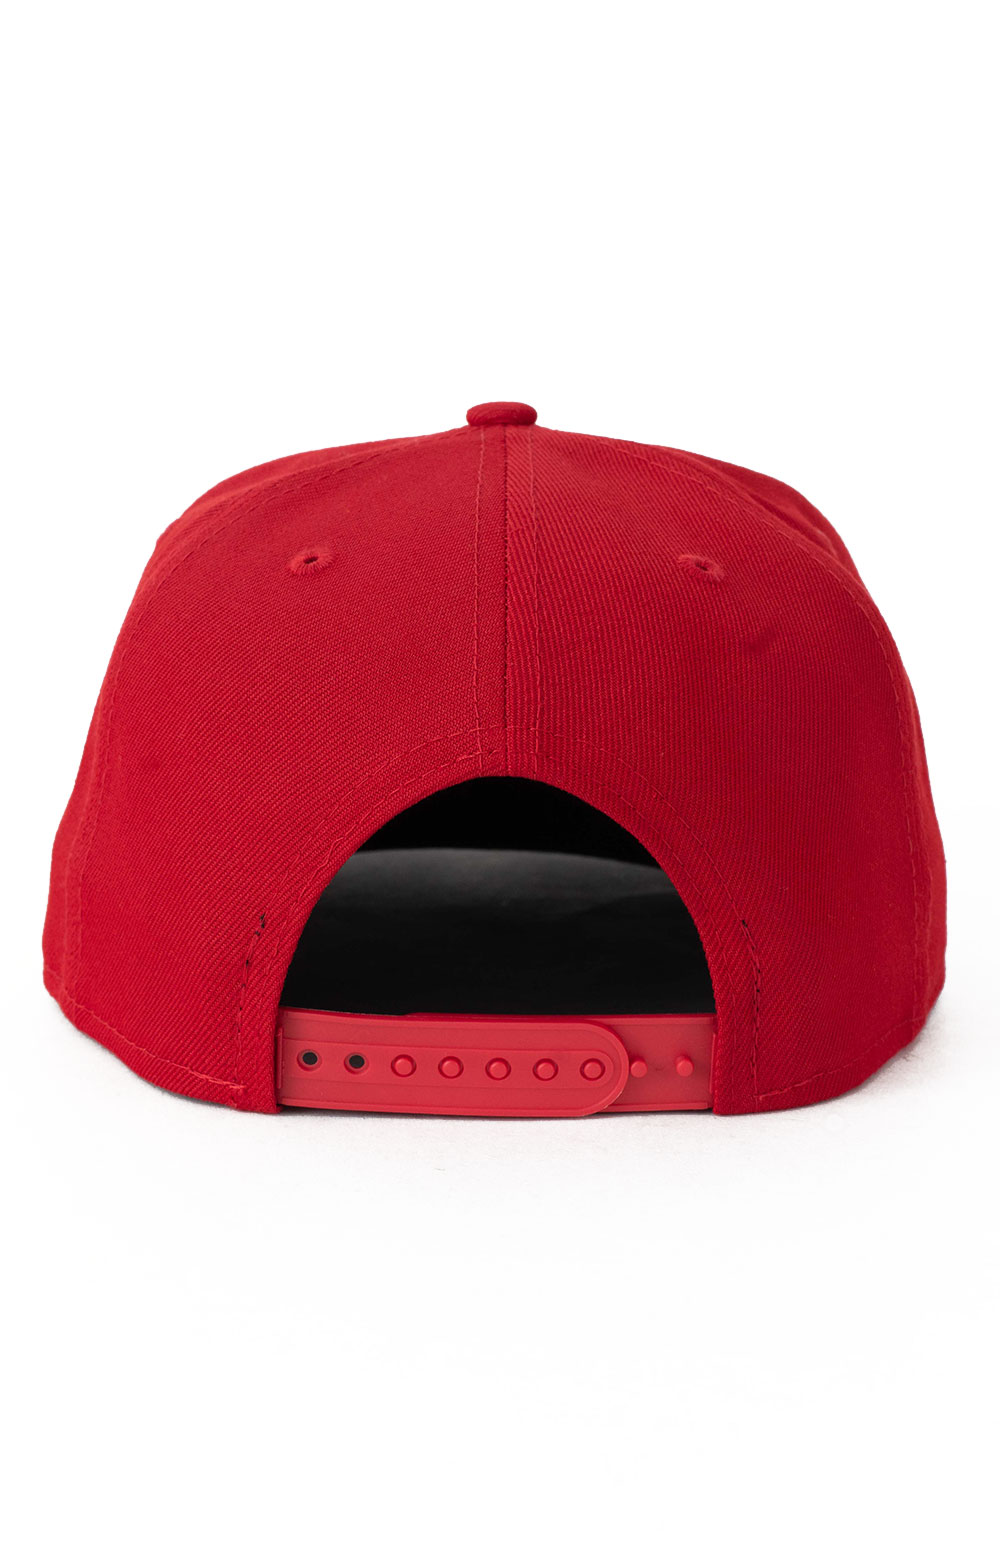 9Fifty Arched Philadelphia Phillies Snap-Back Hat 3